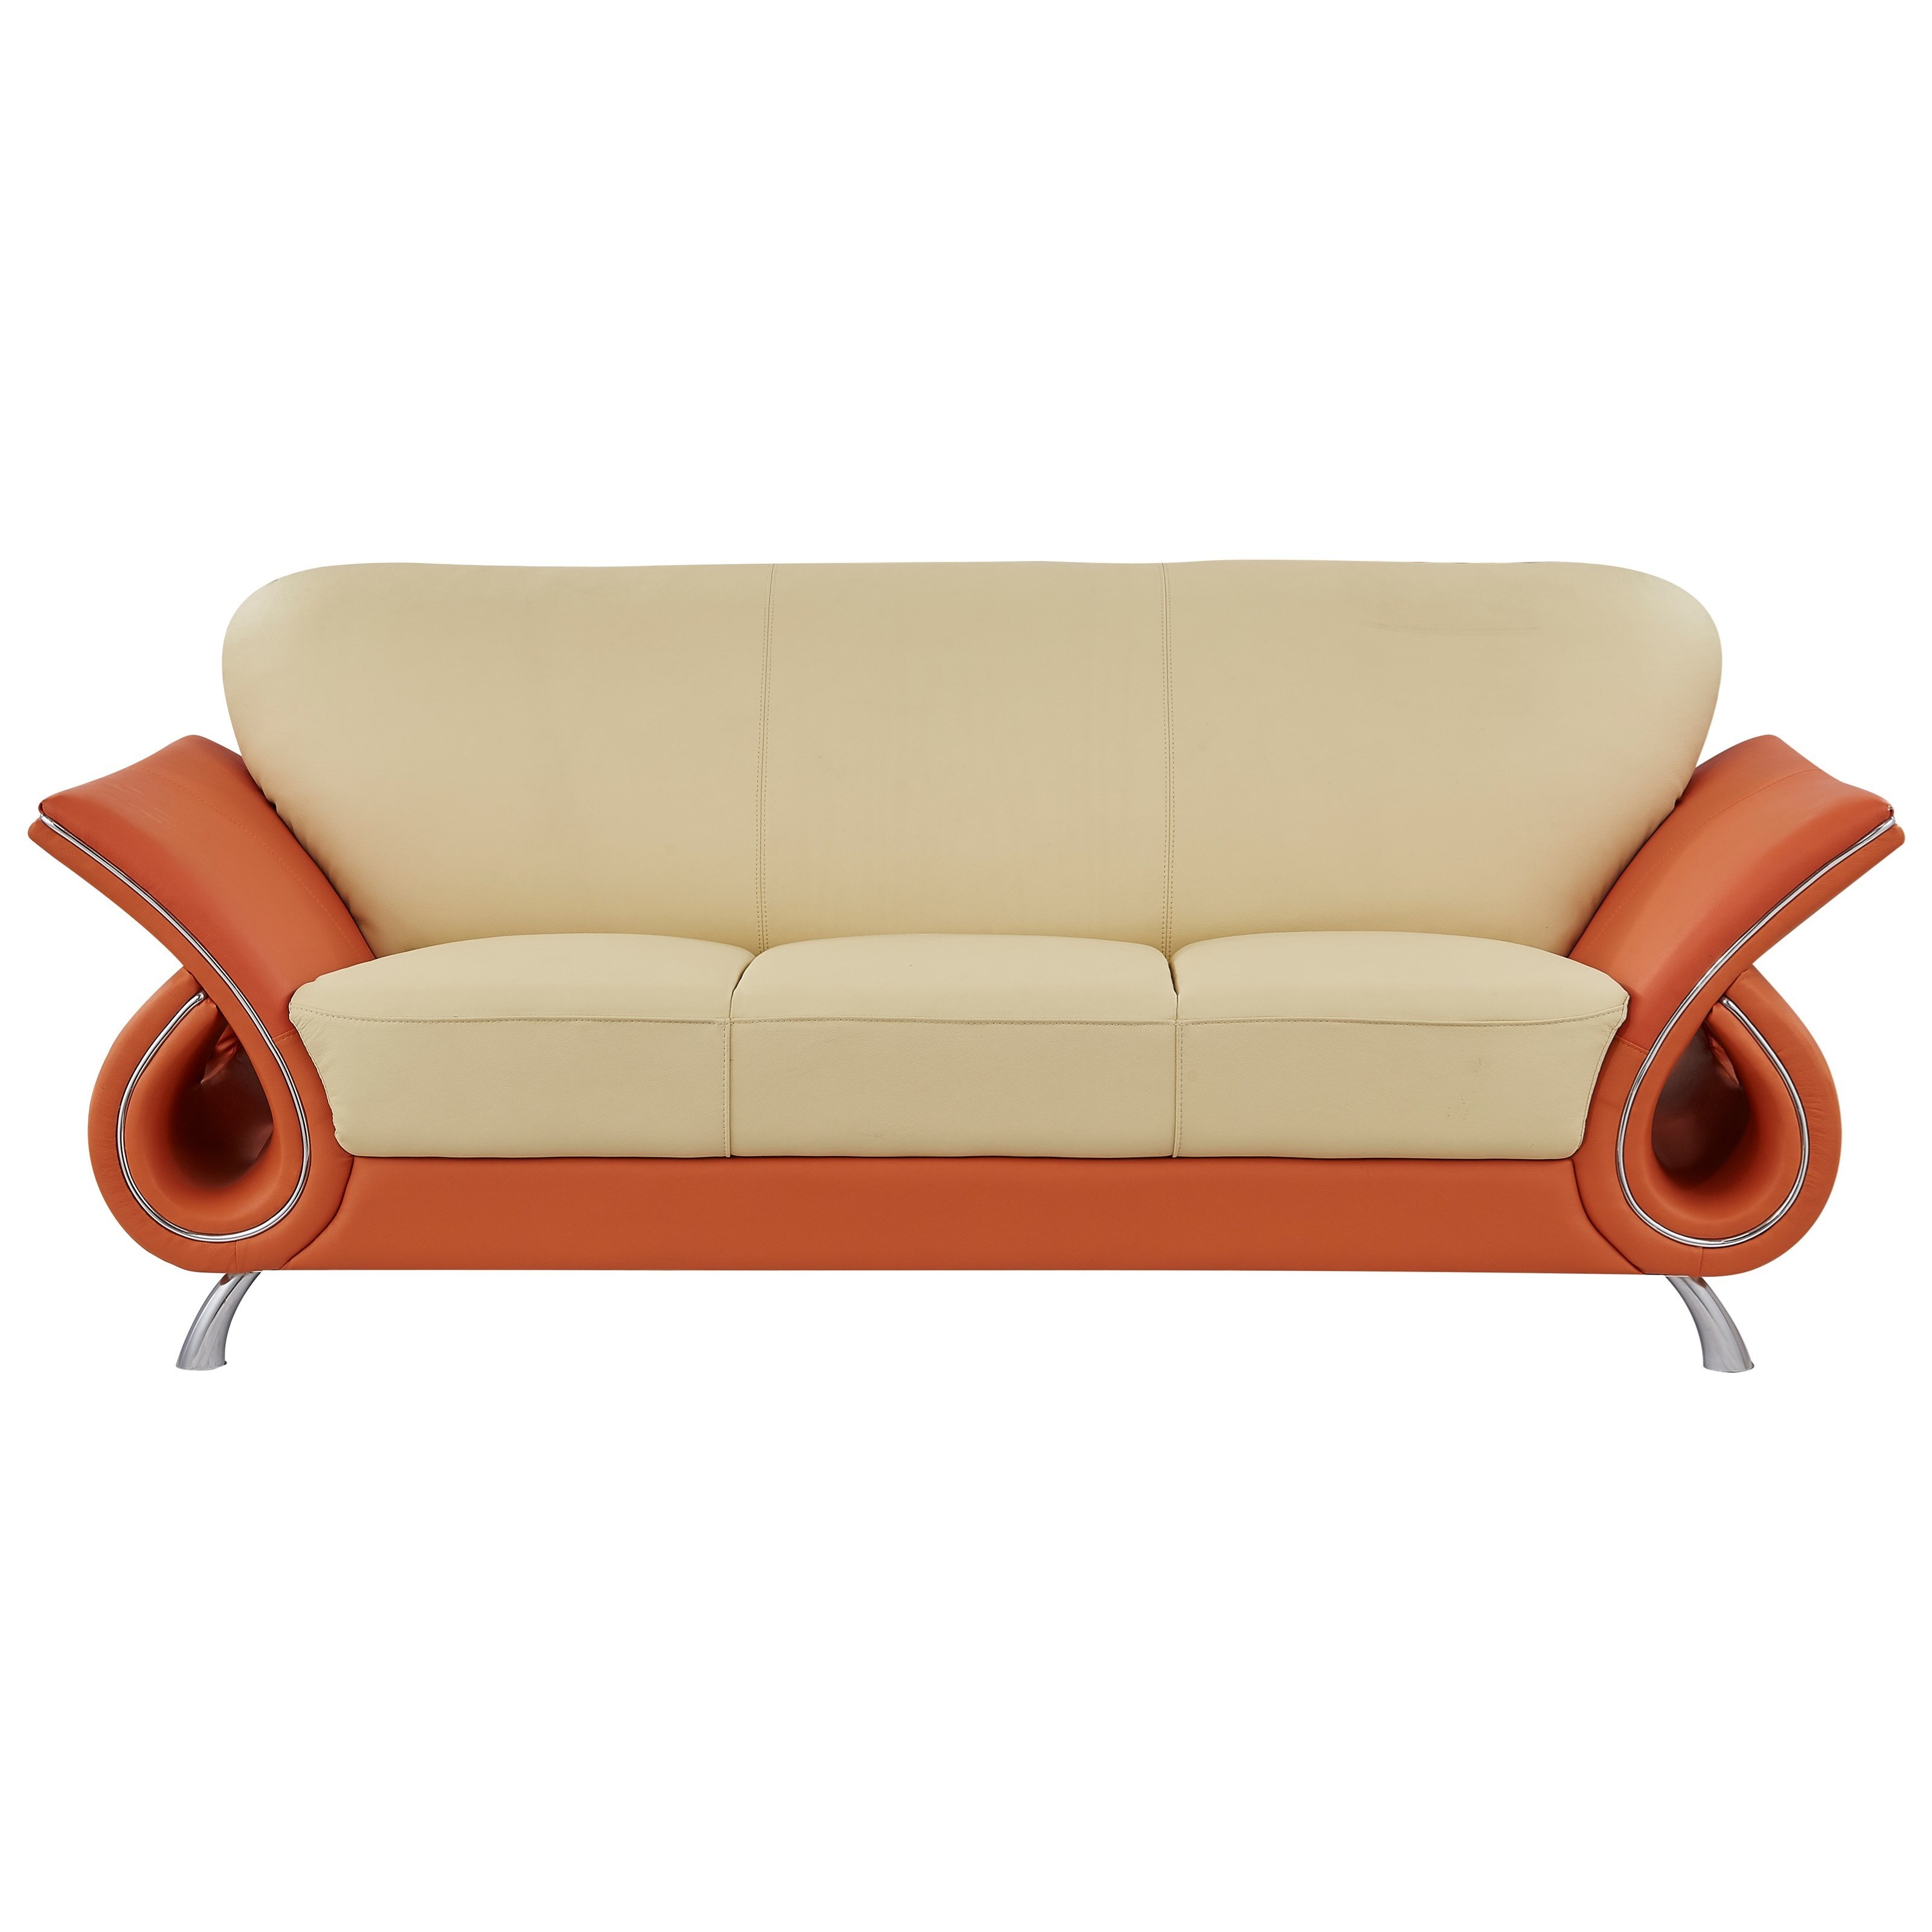 U559 Sofa with Flared Arms by Global Furniture at Nassau Furniture and Mattress